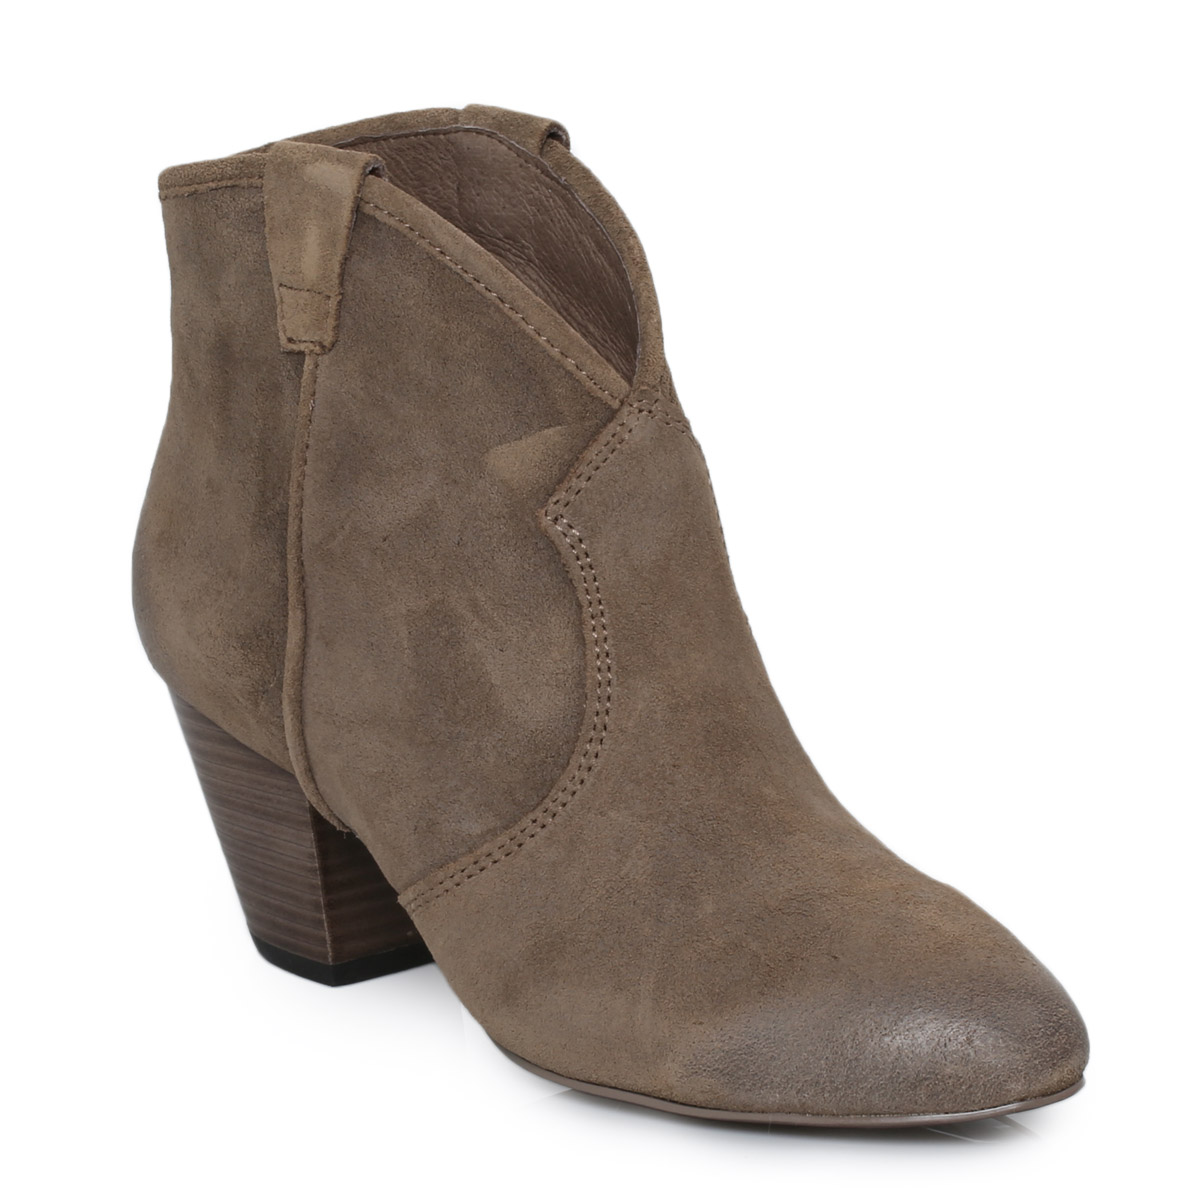 Excellent Sam Edelman Womens Petty Suede Ankle Boot Tan In Brown TAN  Lyst